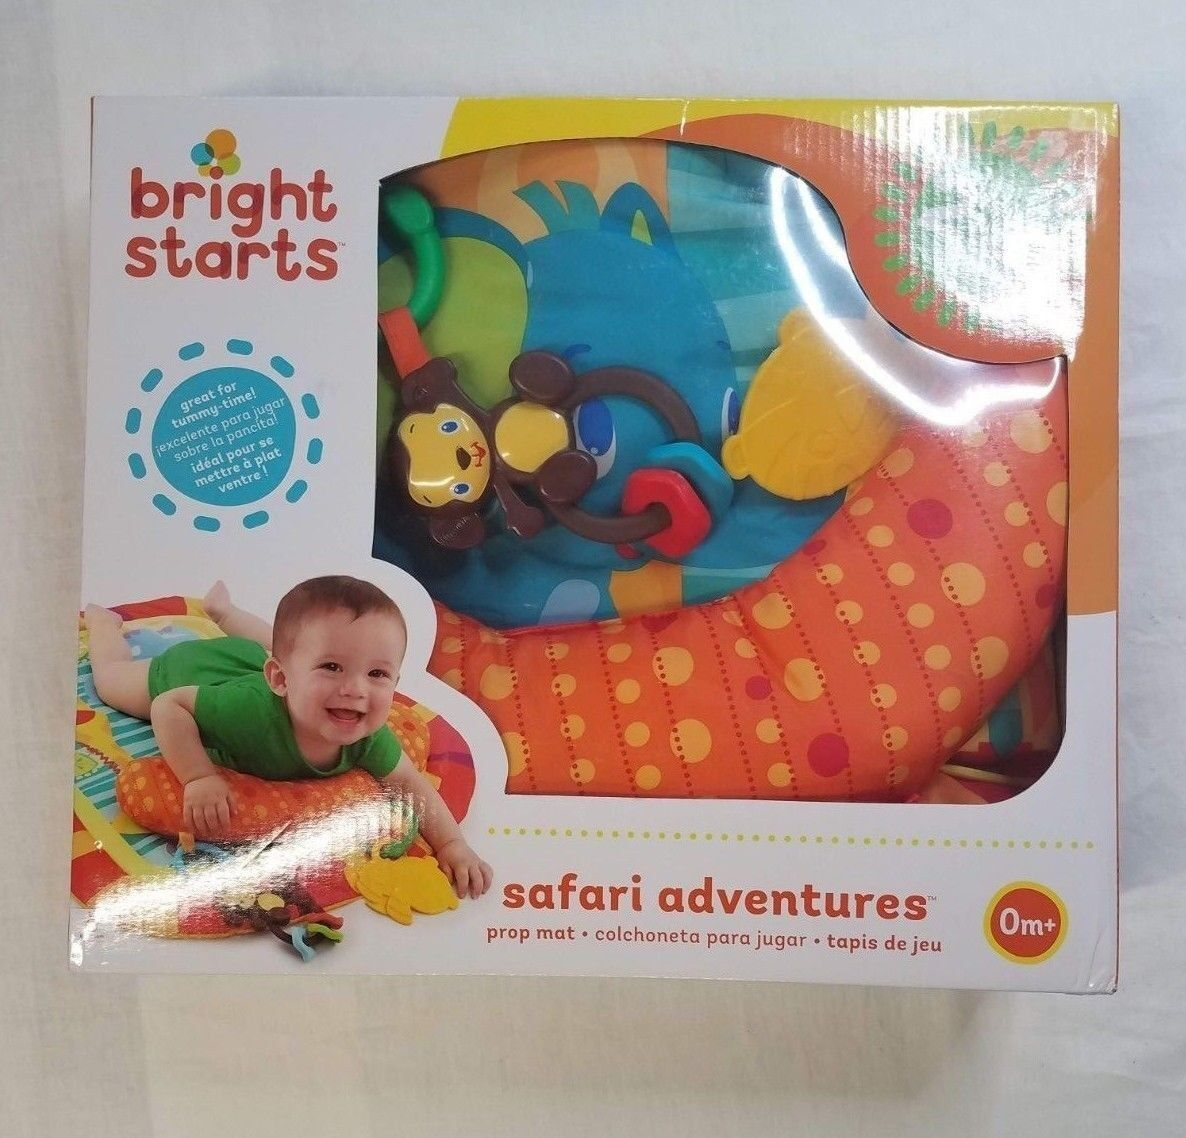 Bright Starts, Infants, 0m+, Safari Adventures Play mat, Ora